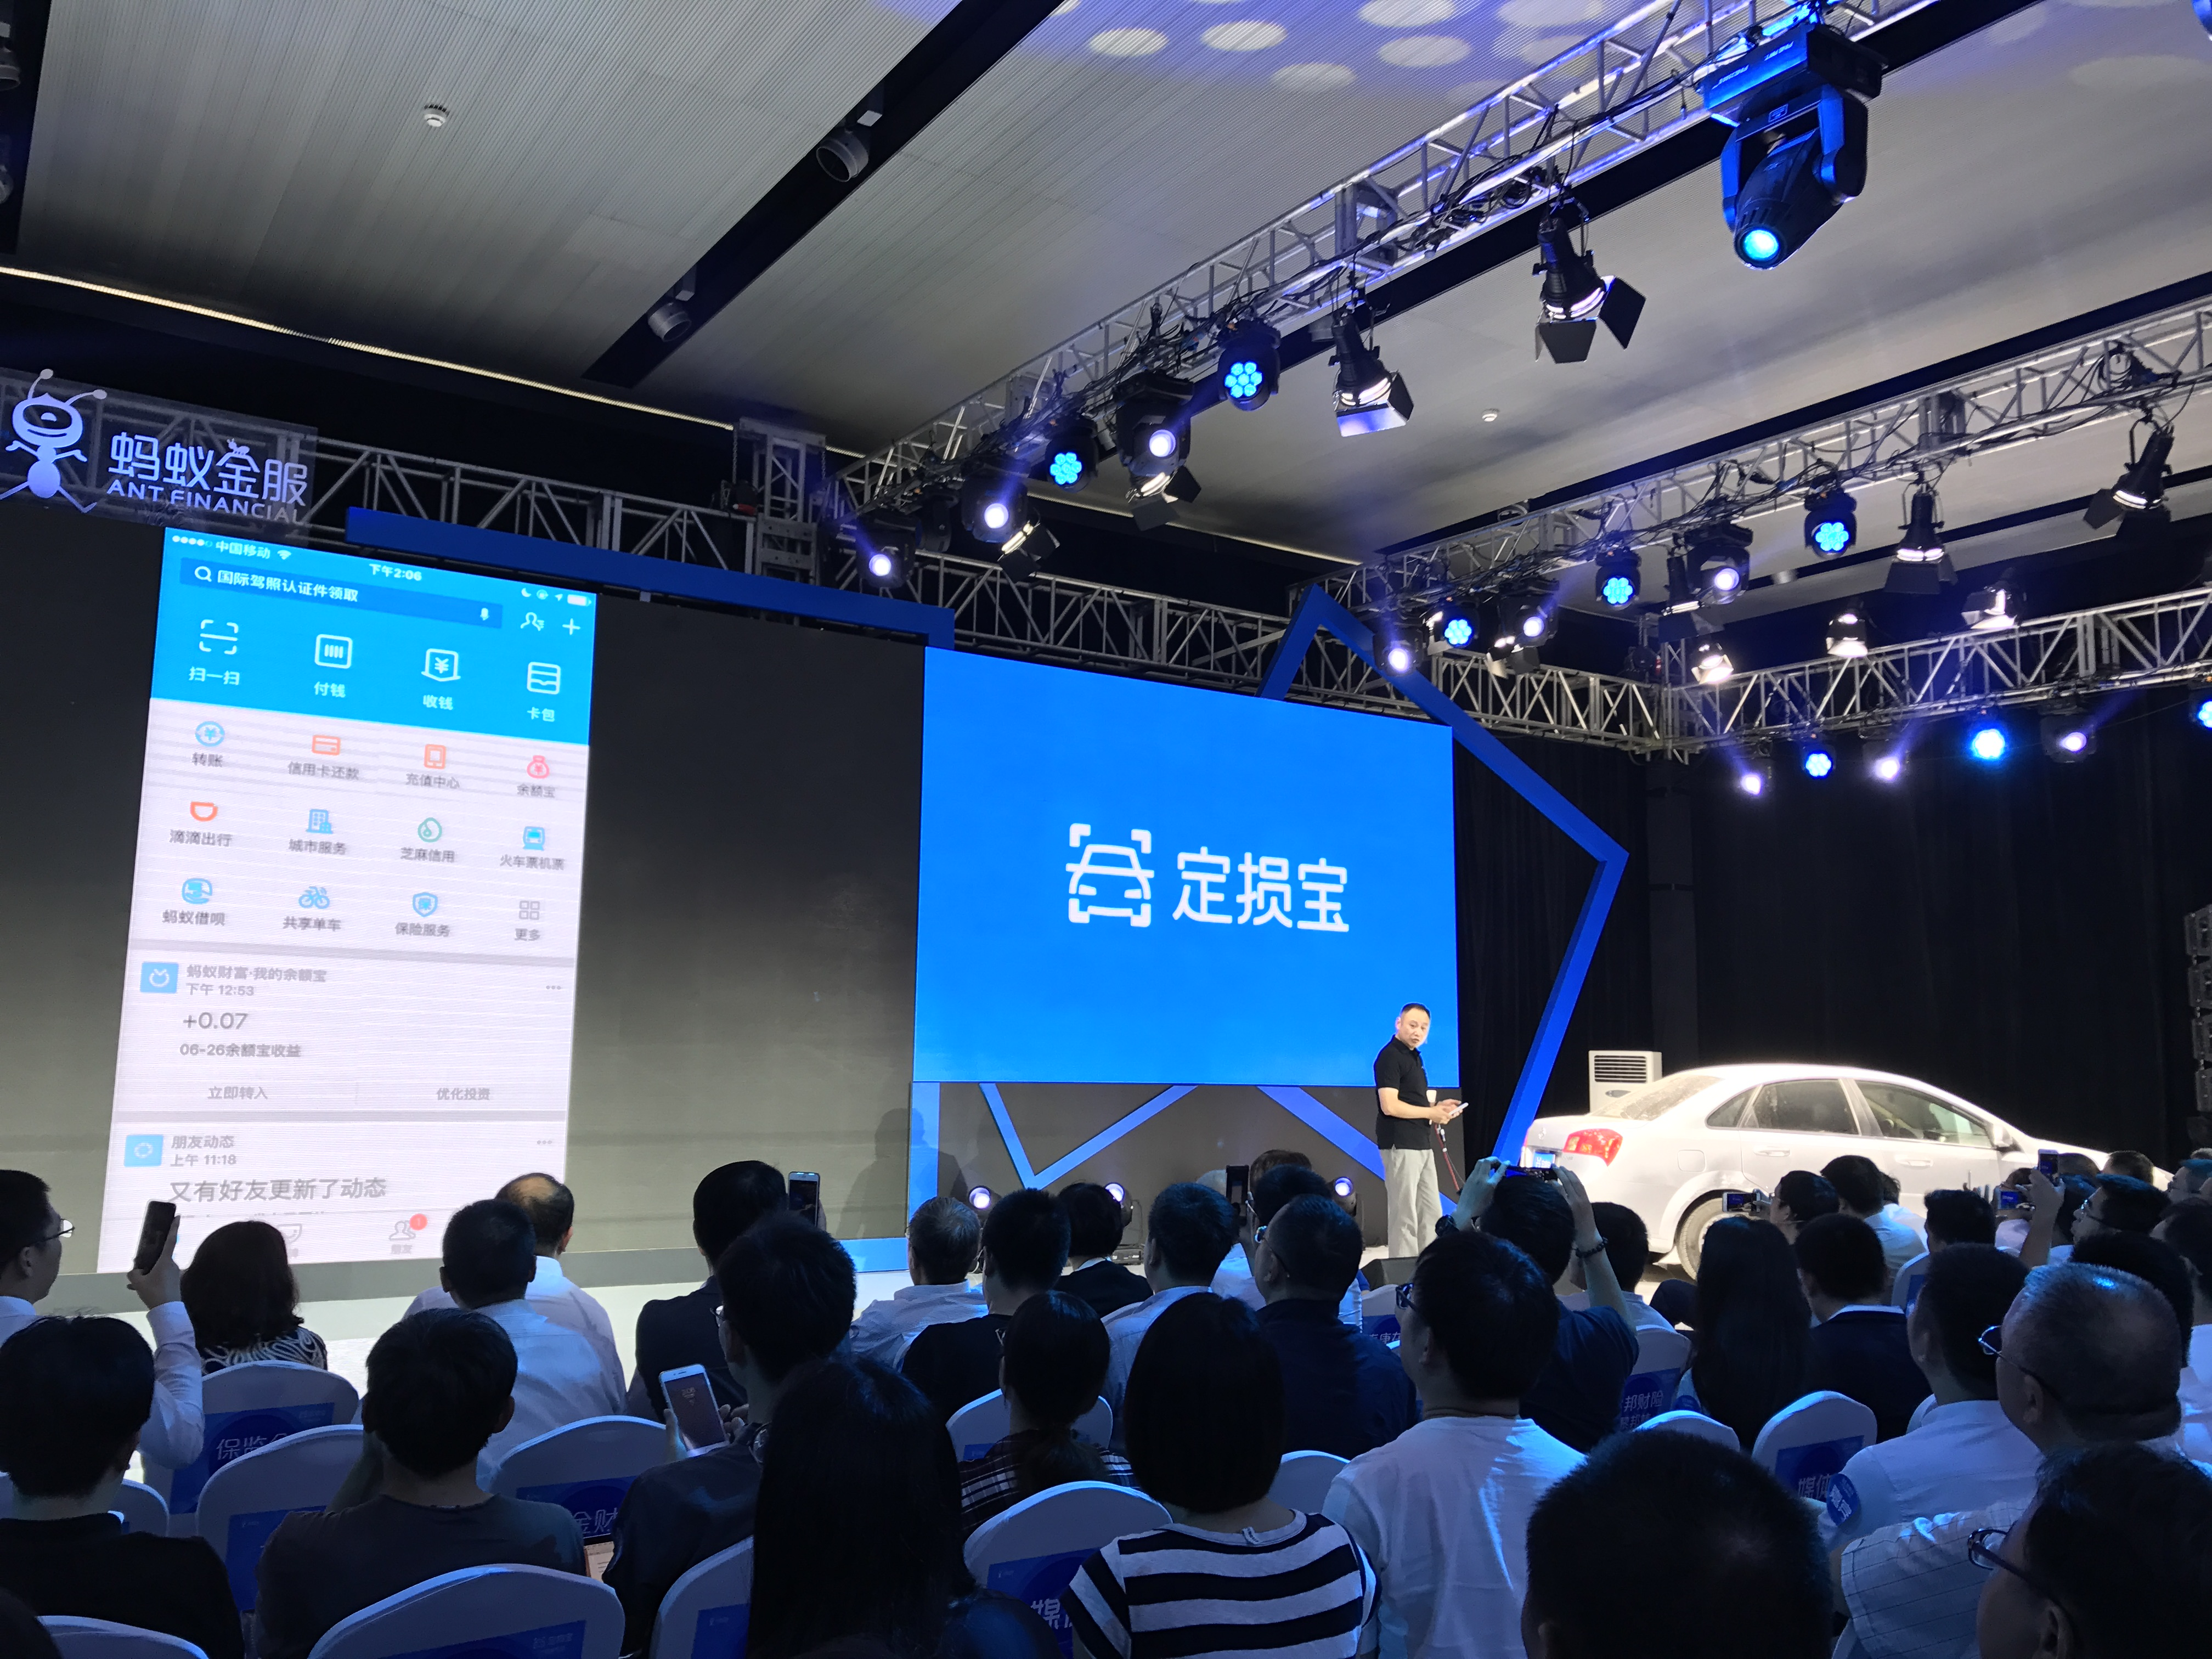 Ant Financial AI Insurance